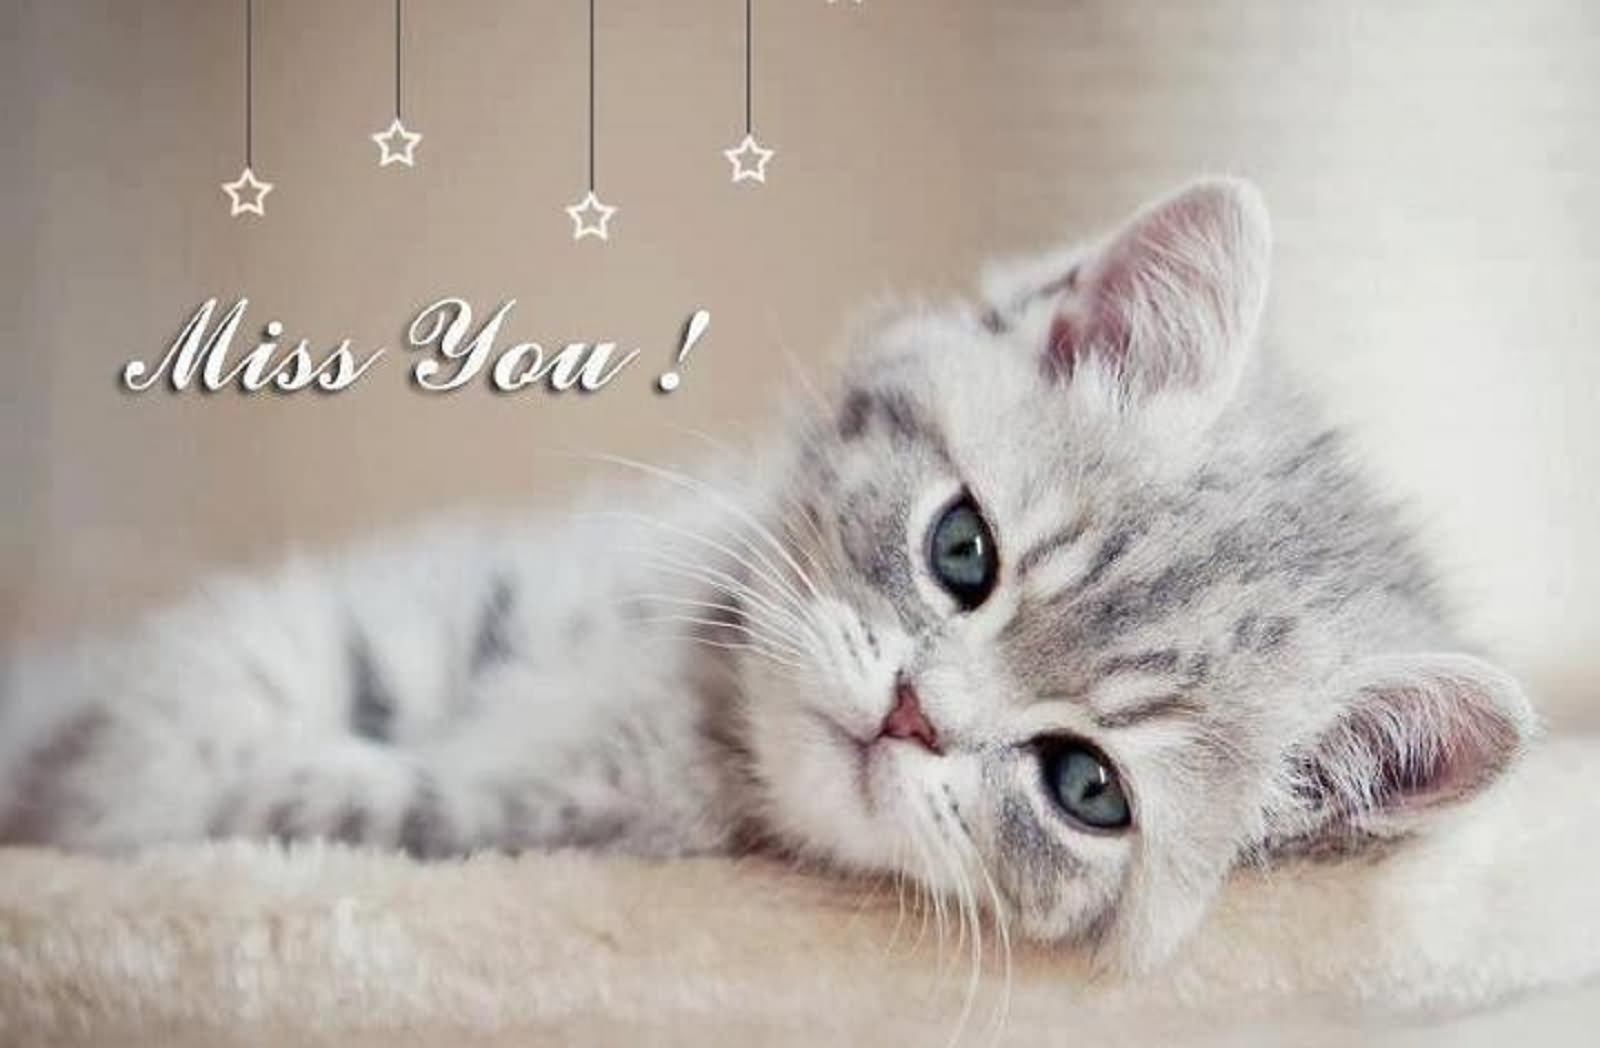 Miss You Sad Kitten Picture Image